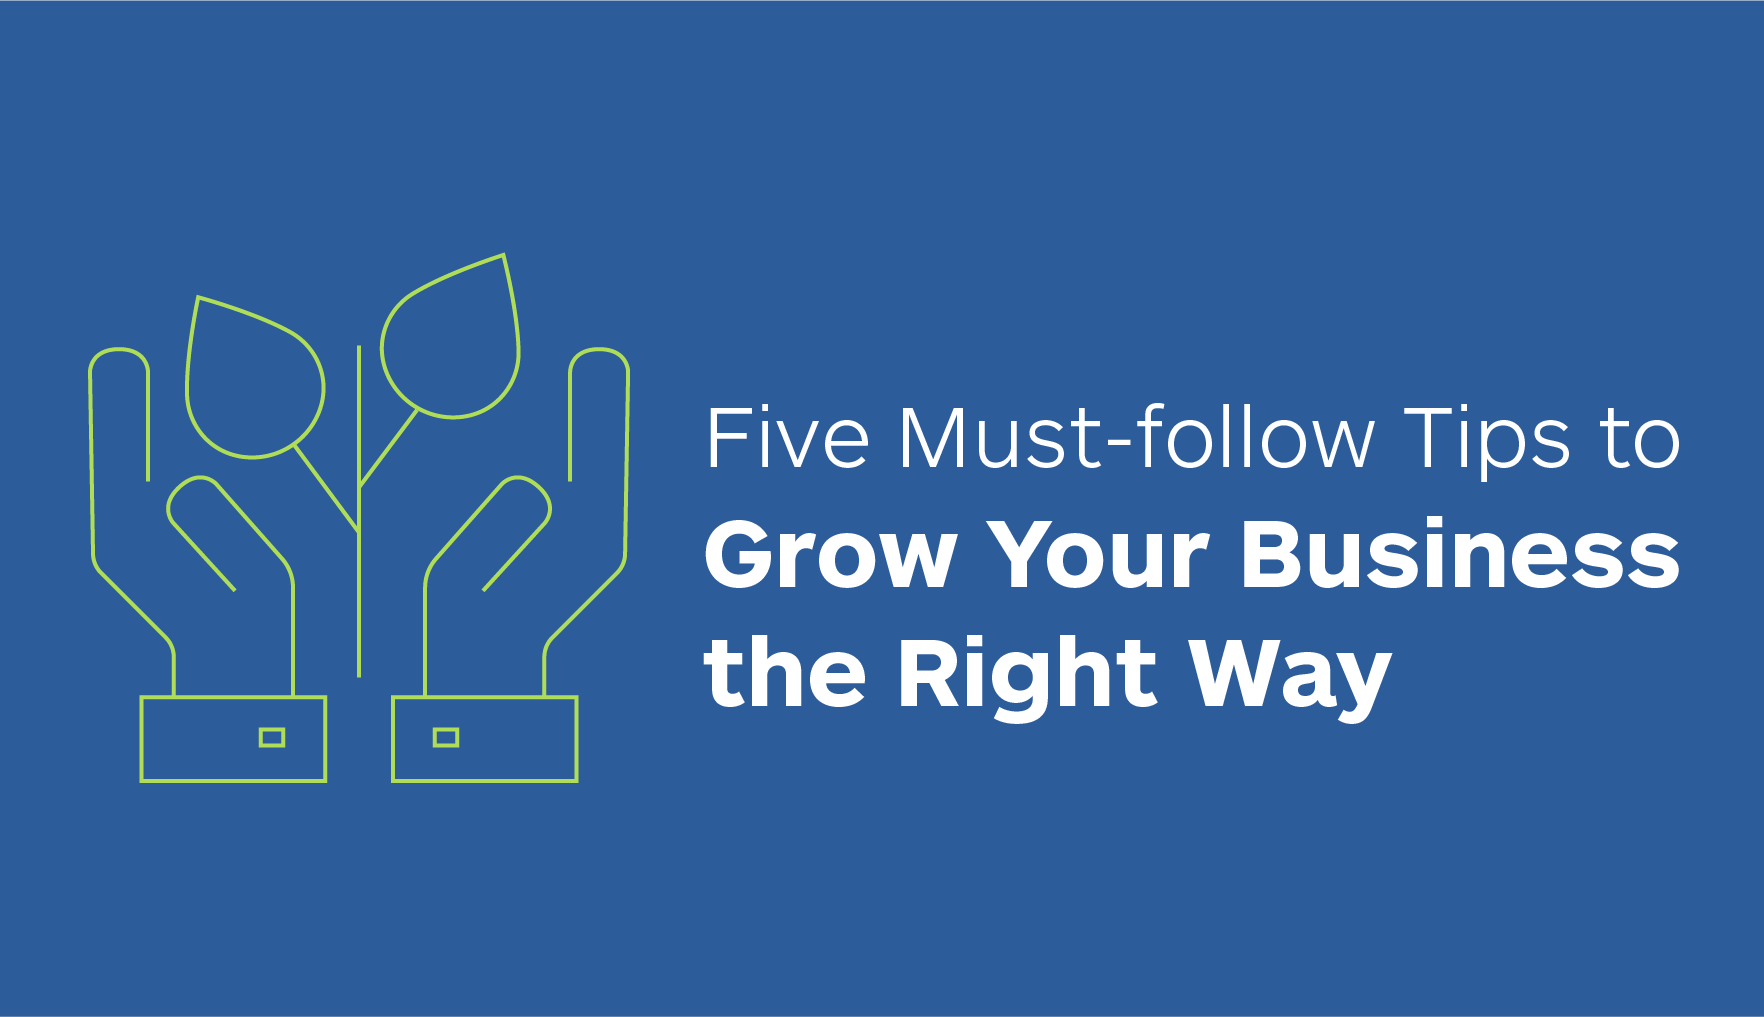 5 Must-follow Tips to Grow Your Business the Right Way